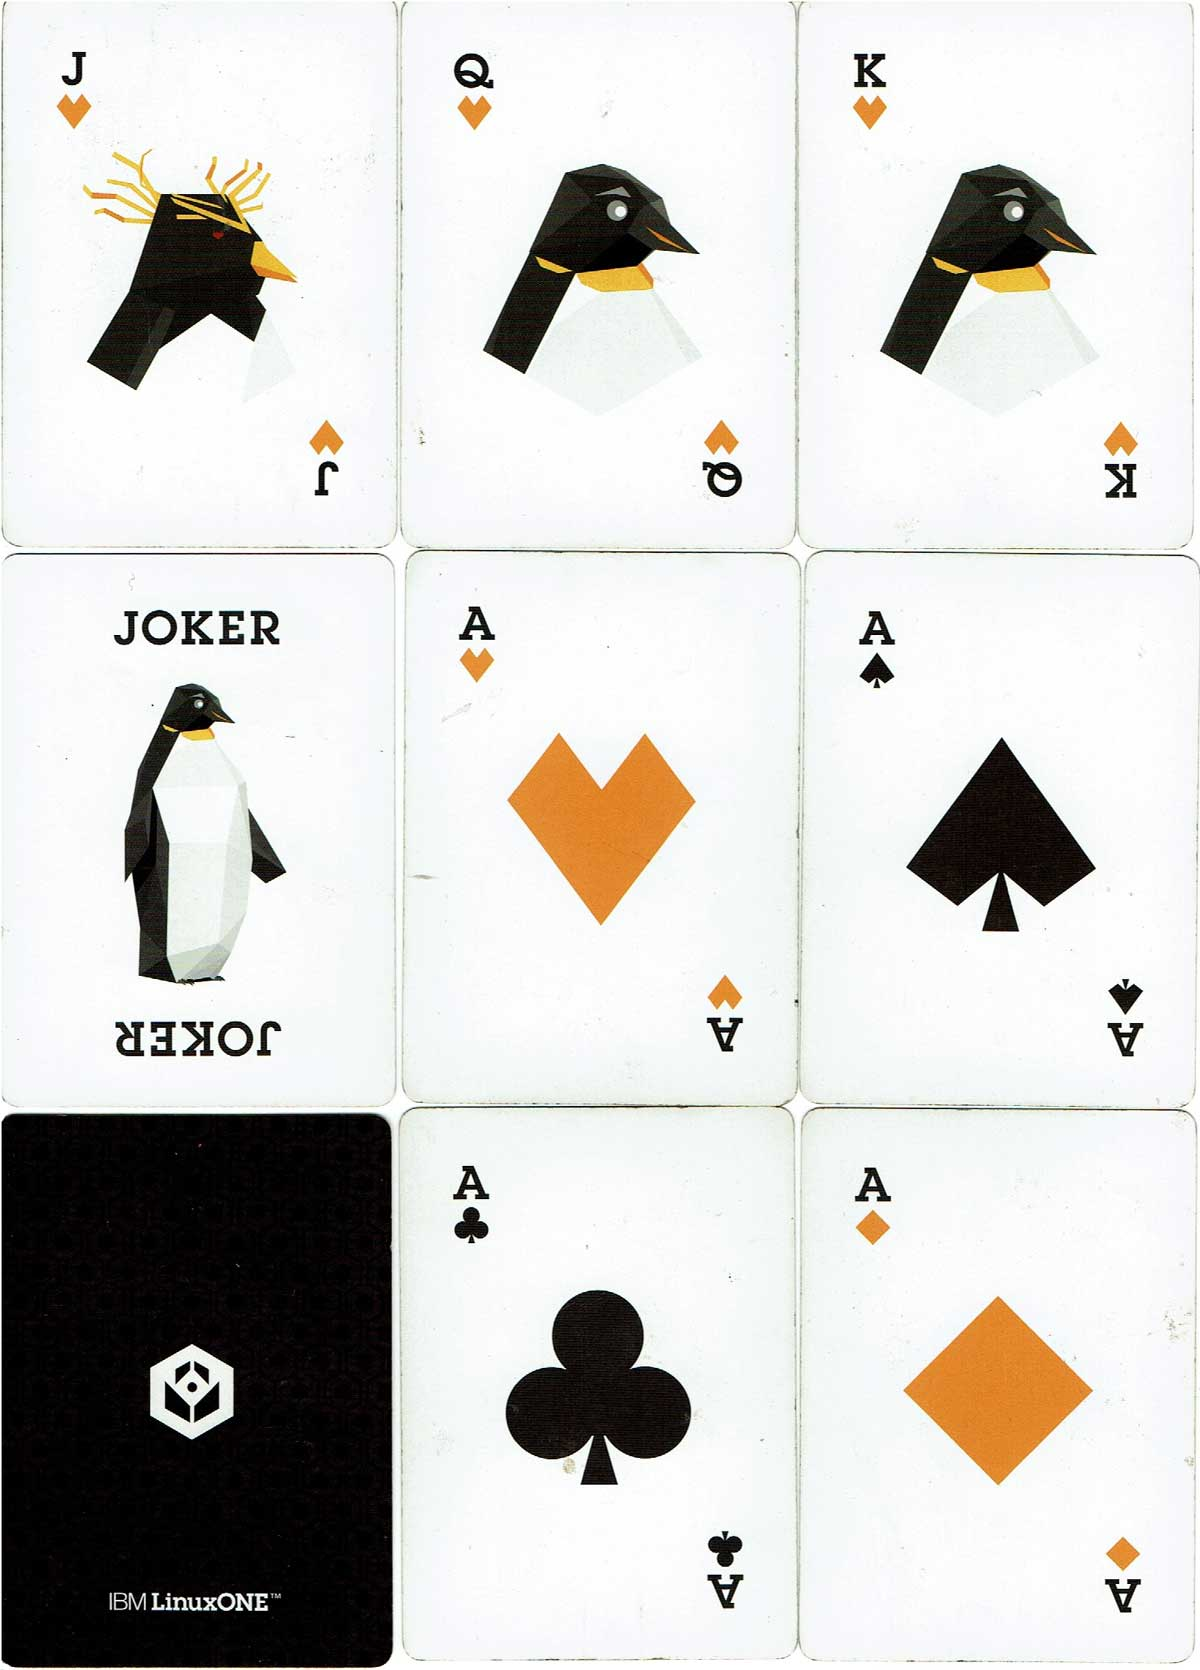 IBM Linux One playing cards, c.2018